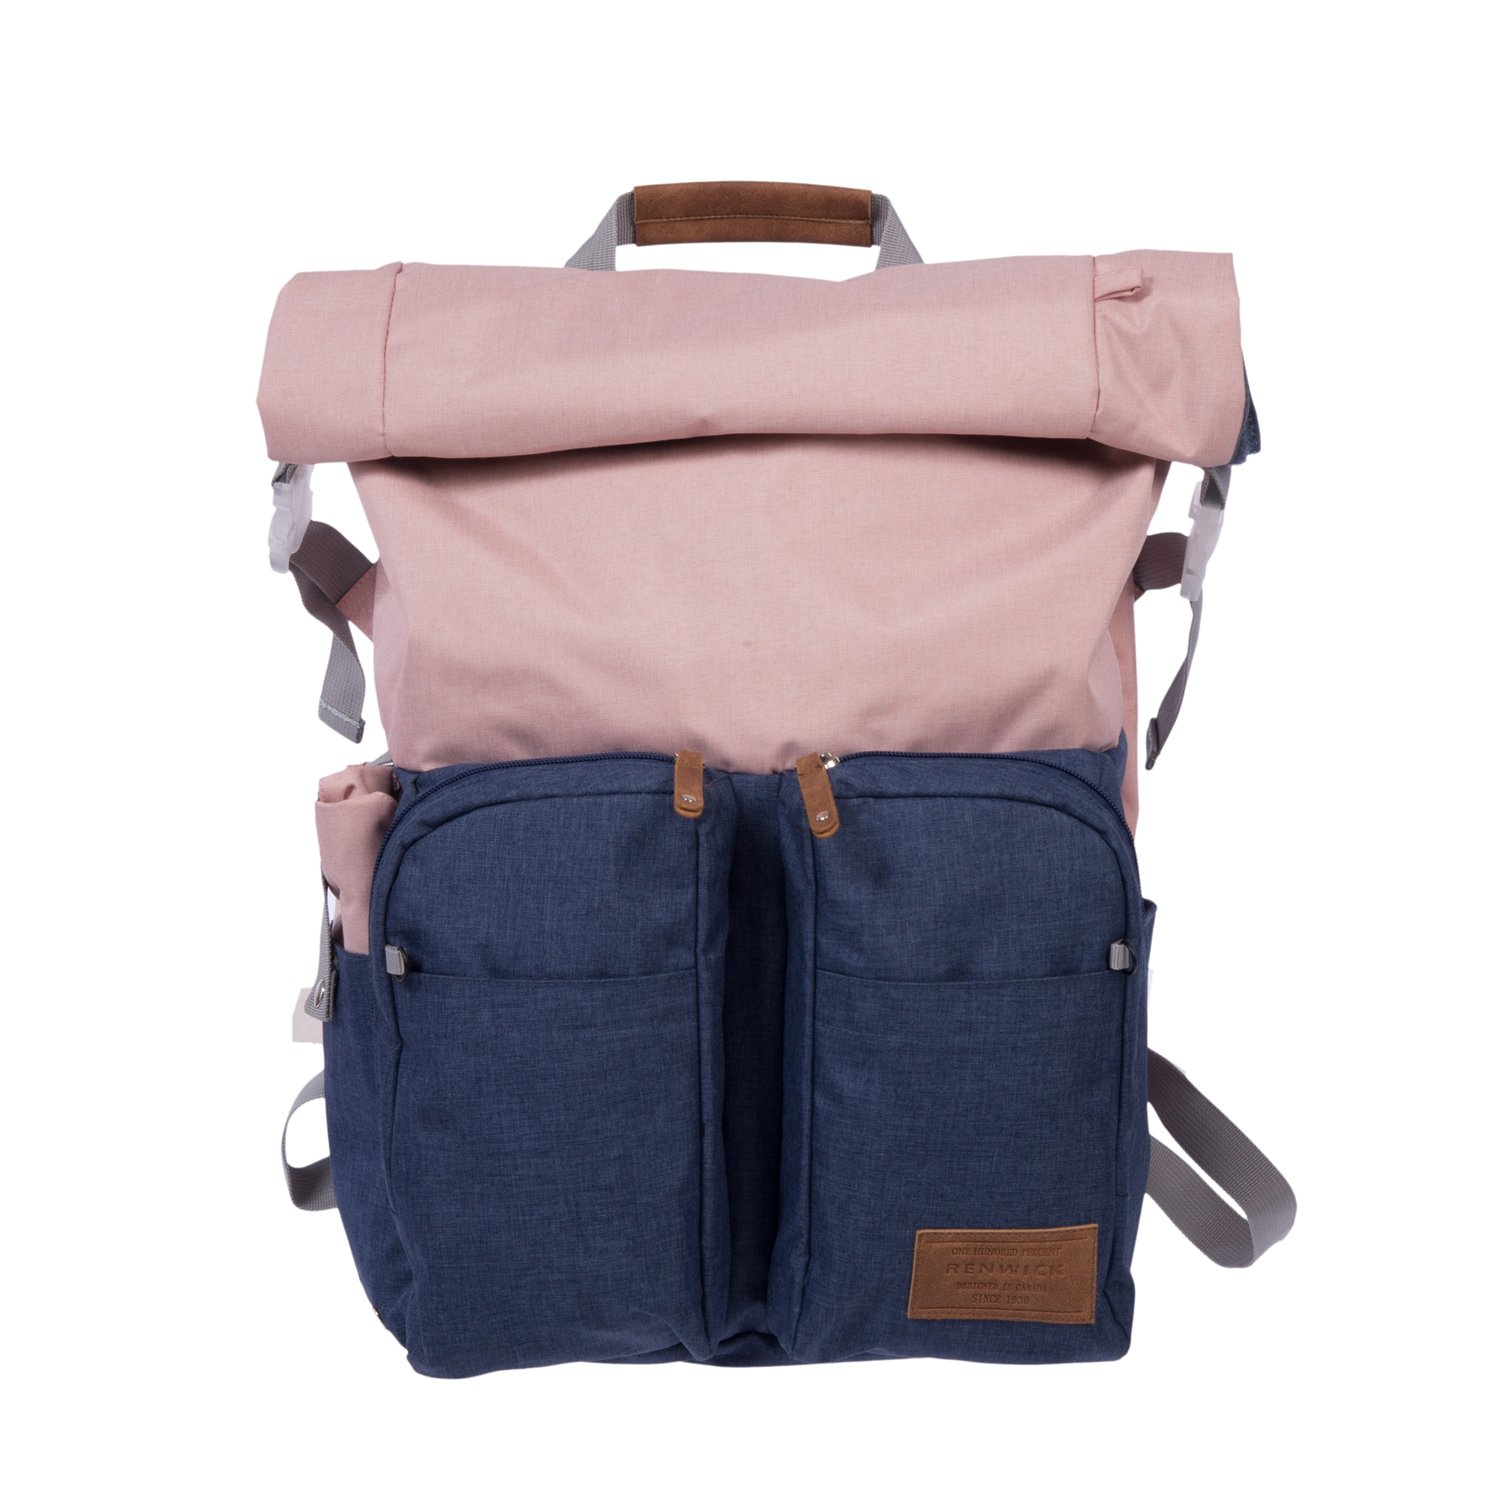 Renwick Roll Top Backpack with Laptop Sleeve and Chord Organizer (Pink) A2206_RW_PNK